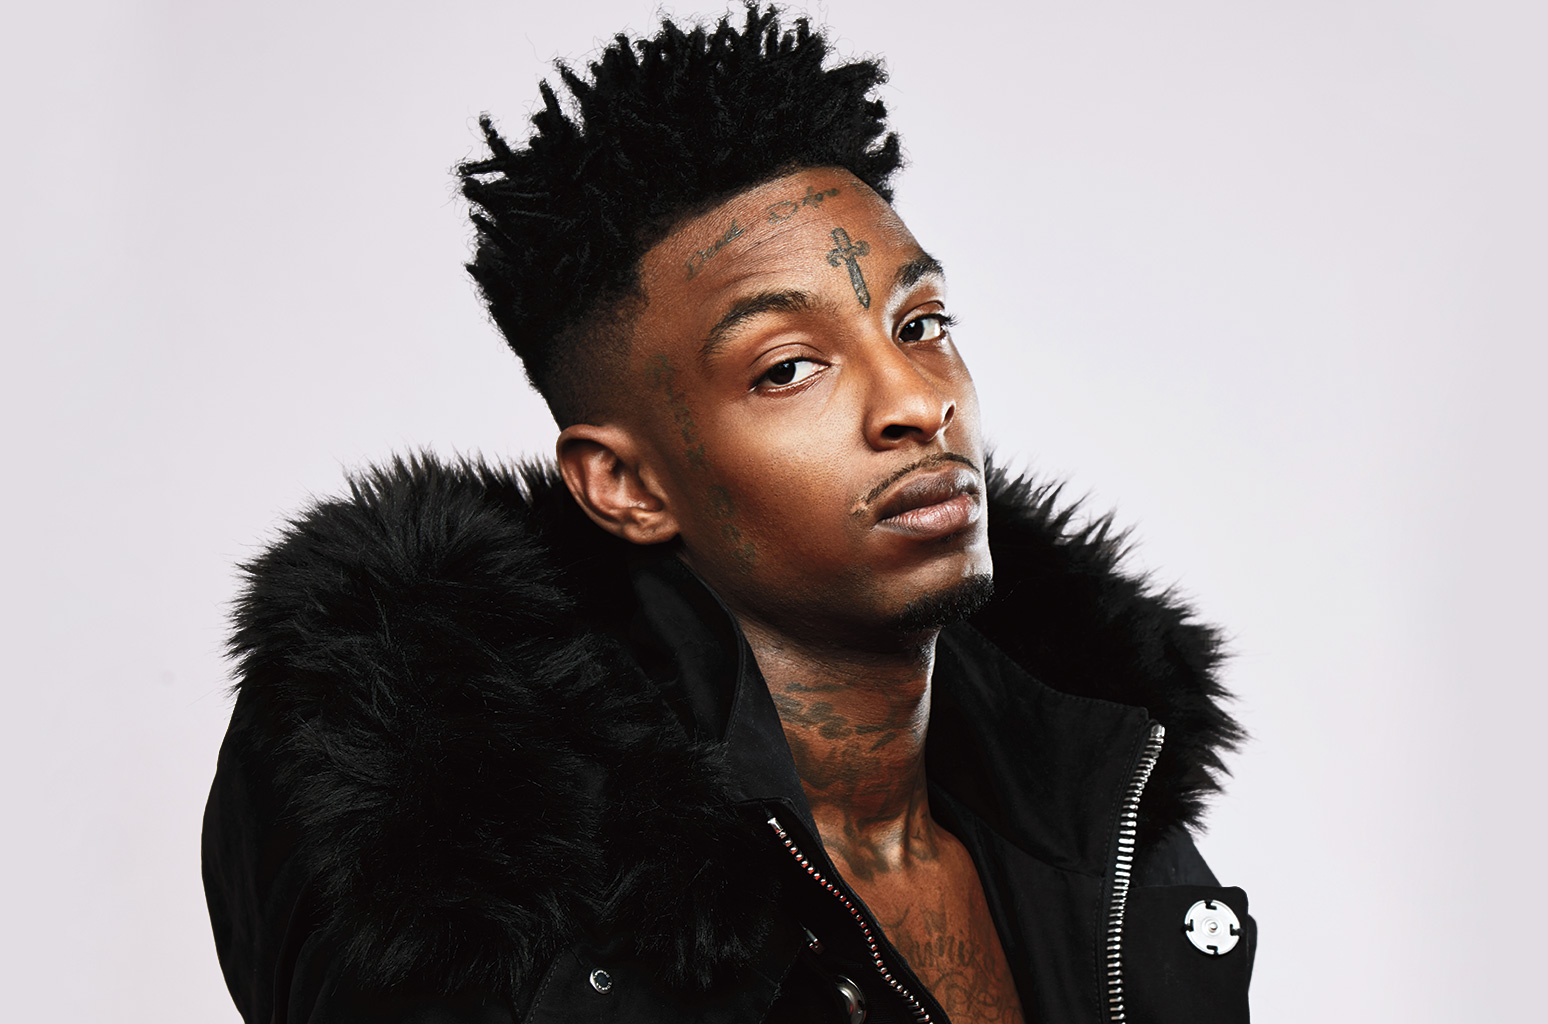 21 Savage Album About to Drop 21 Savage vegas press 2016 bb31 beat billboard 1548